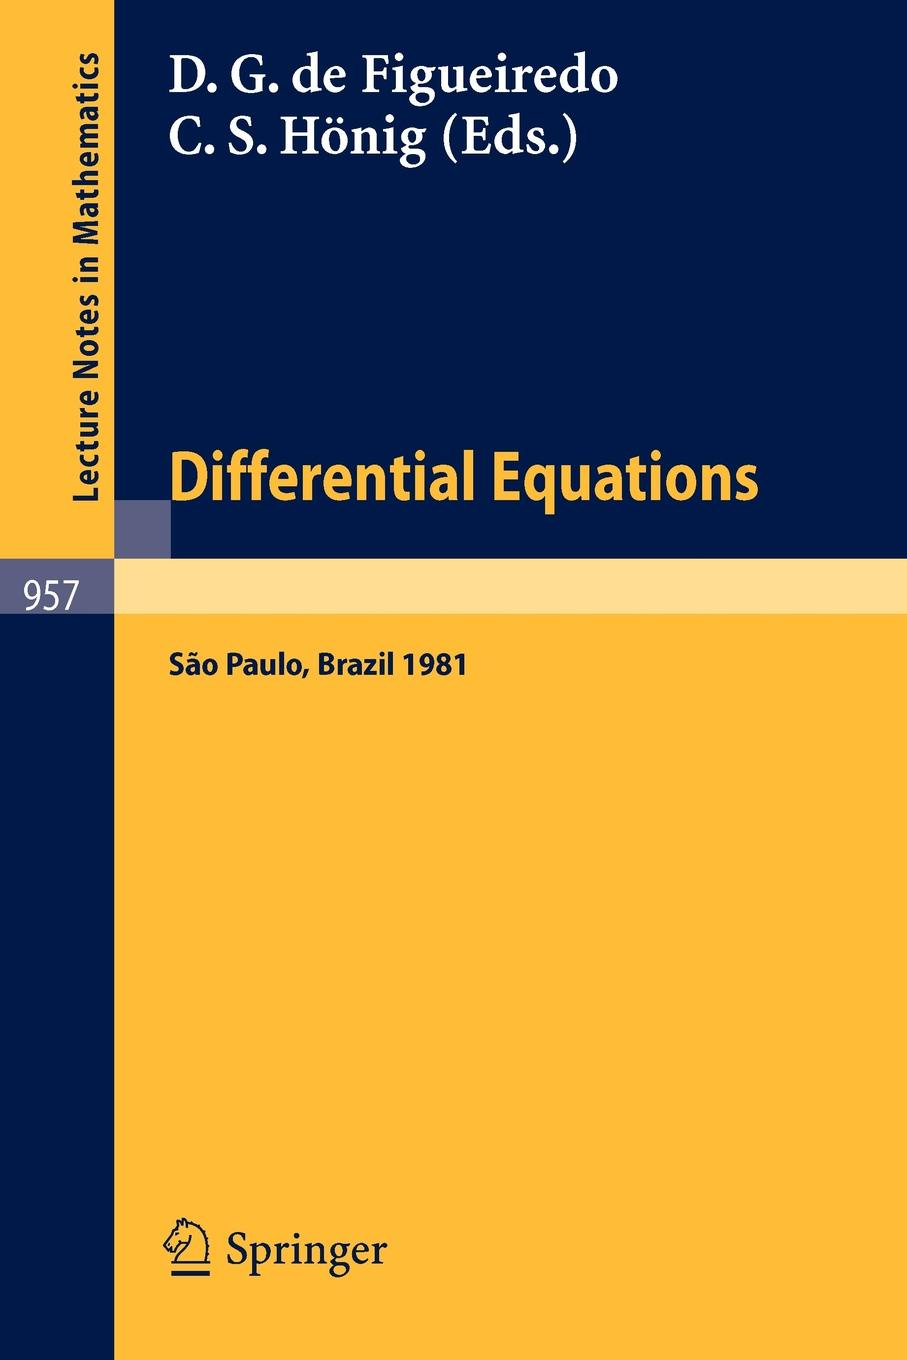 Differential Equations. Proceedings of the 1st Latin American School of Differential Equations, Held at Sao Paulo, Brazil, June 29 - July 17, 1981 qualitative theory of differential equations